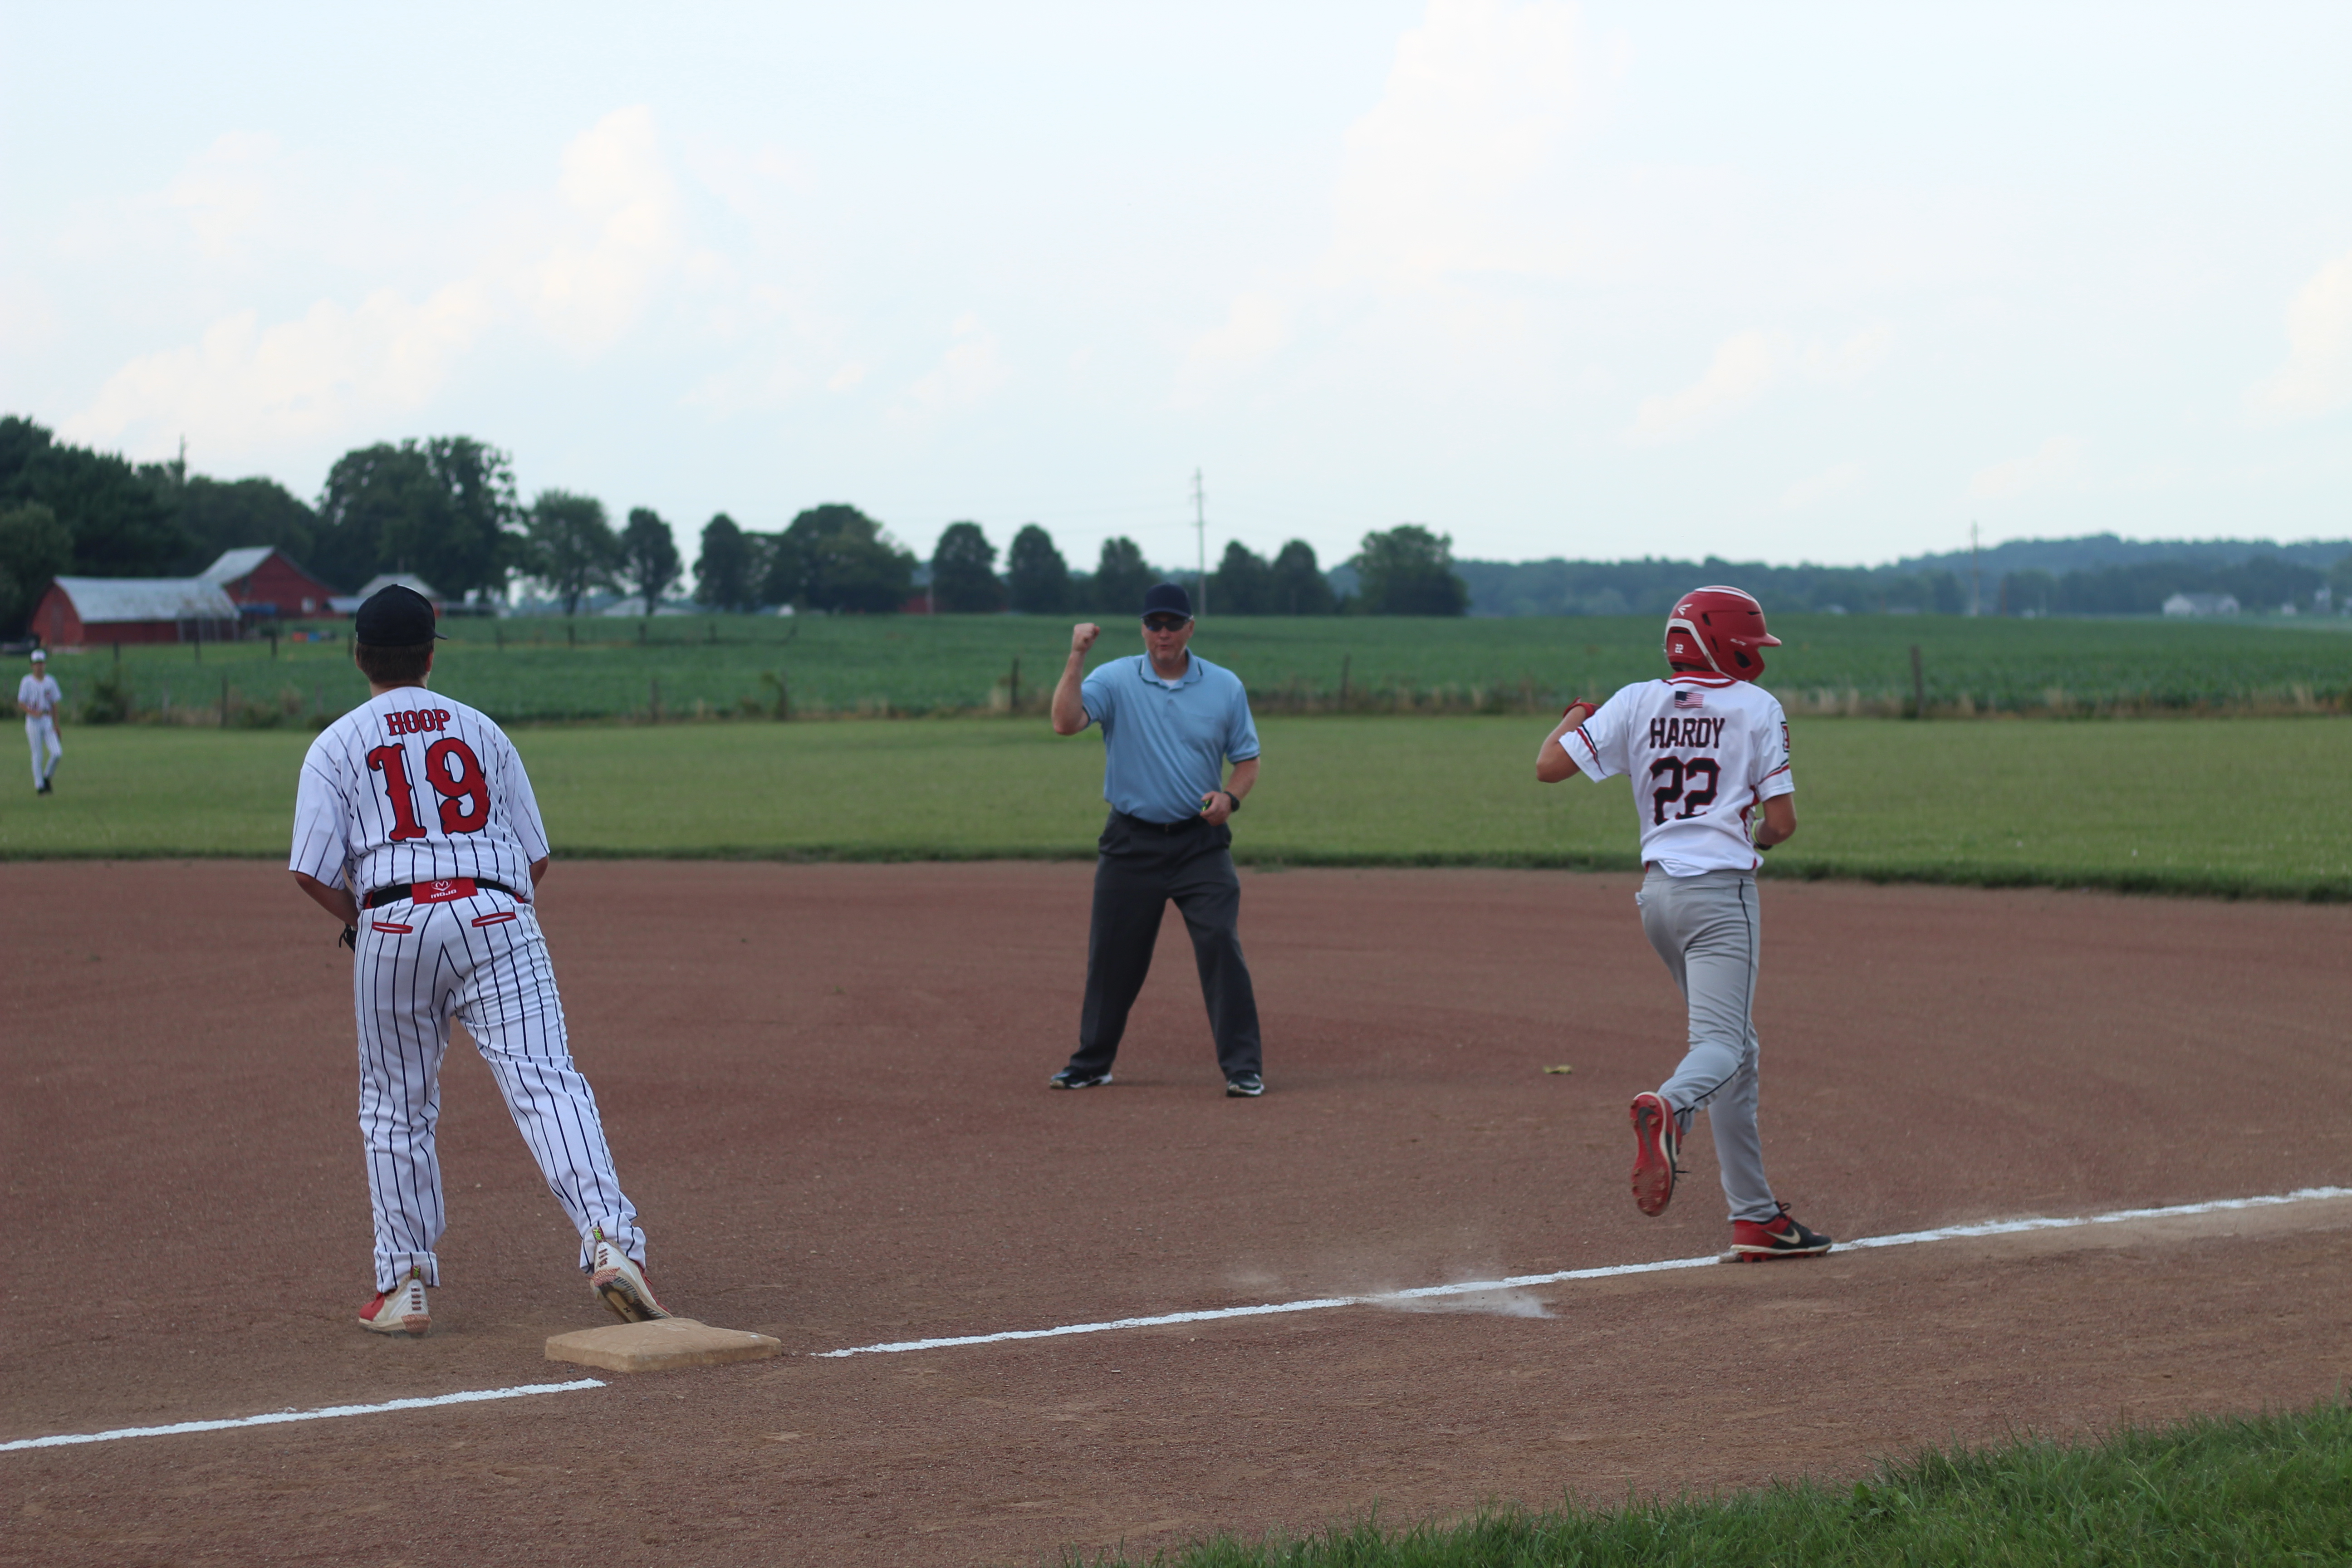 Aaron McManes makes a call at first during a game in July.